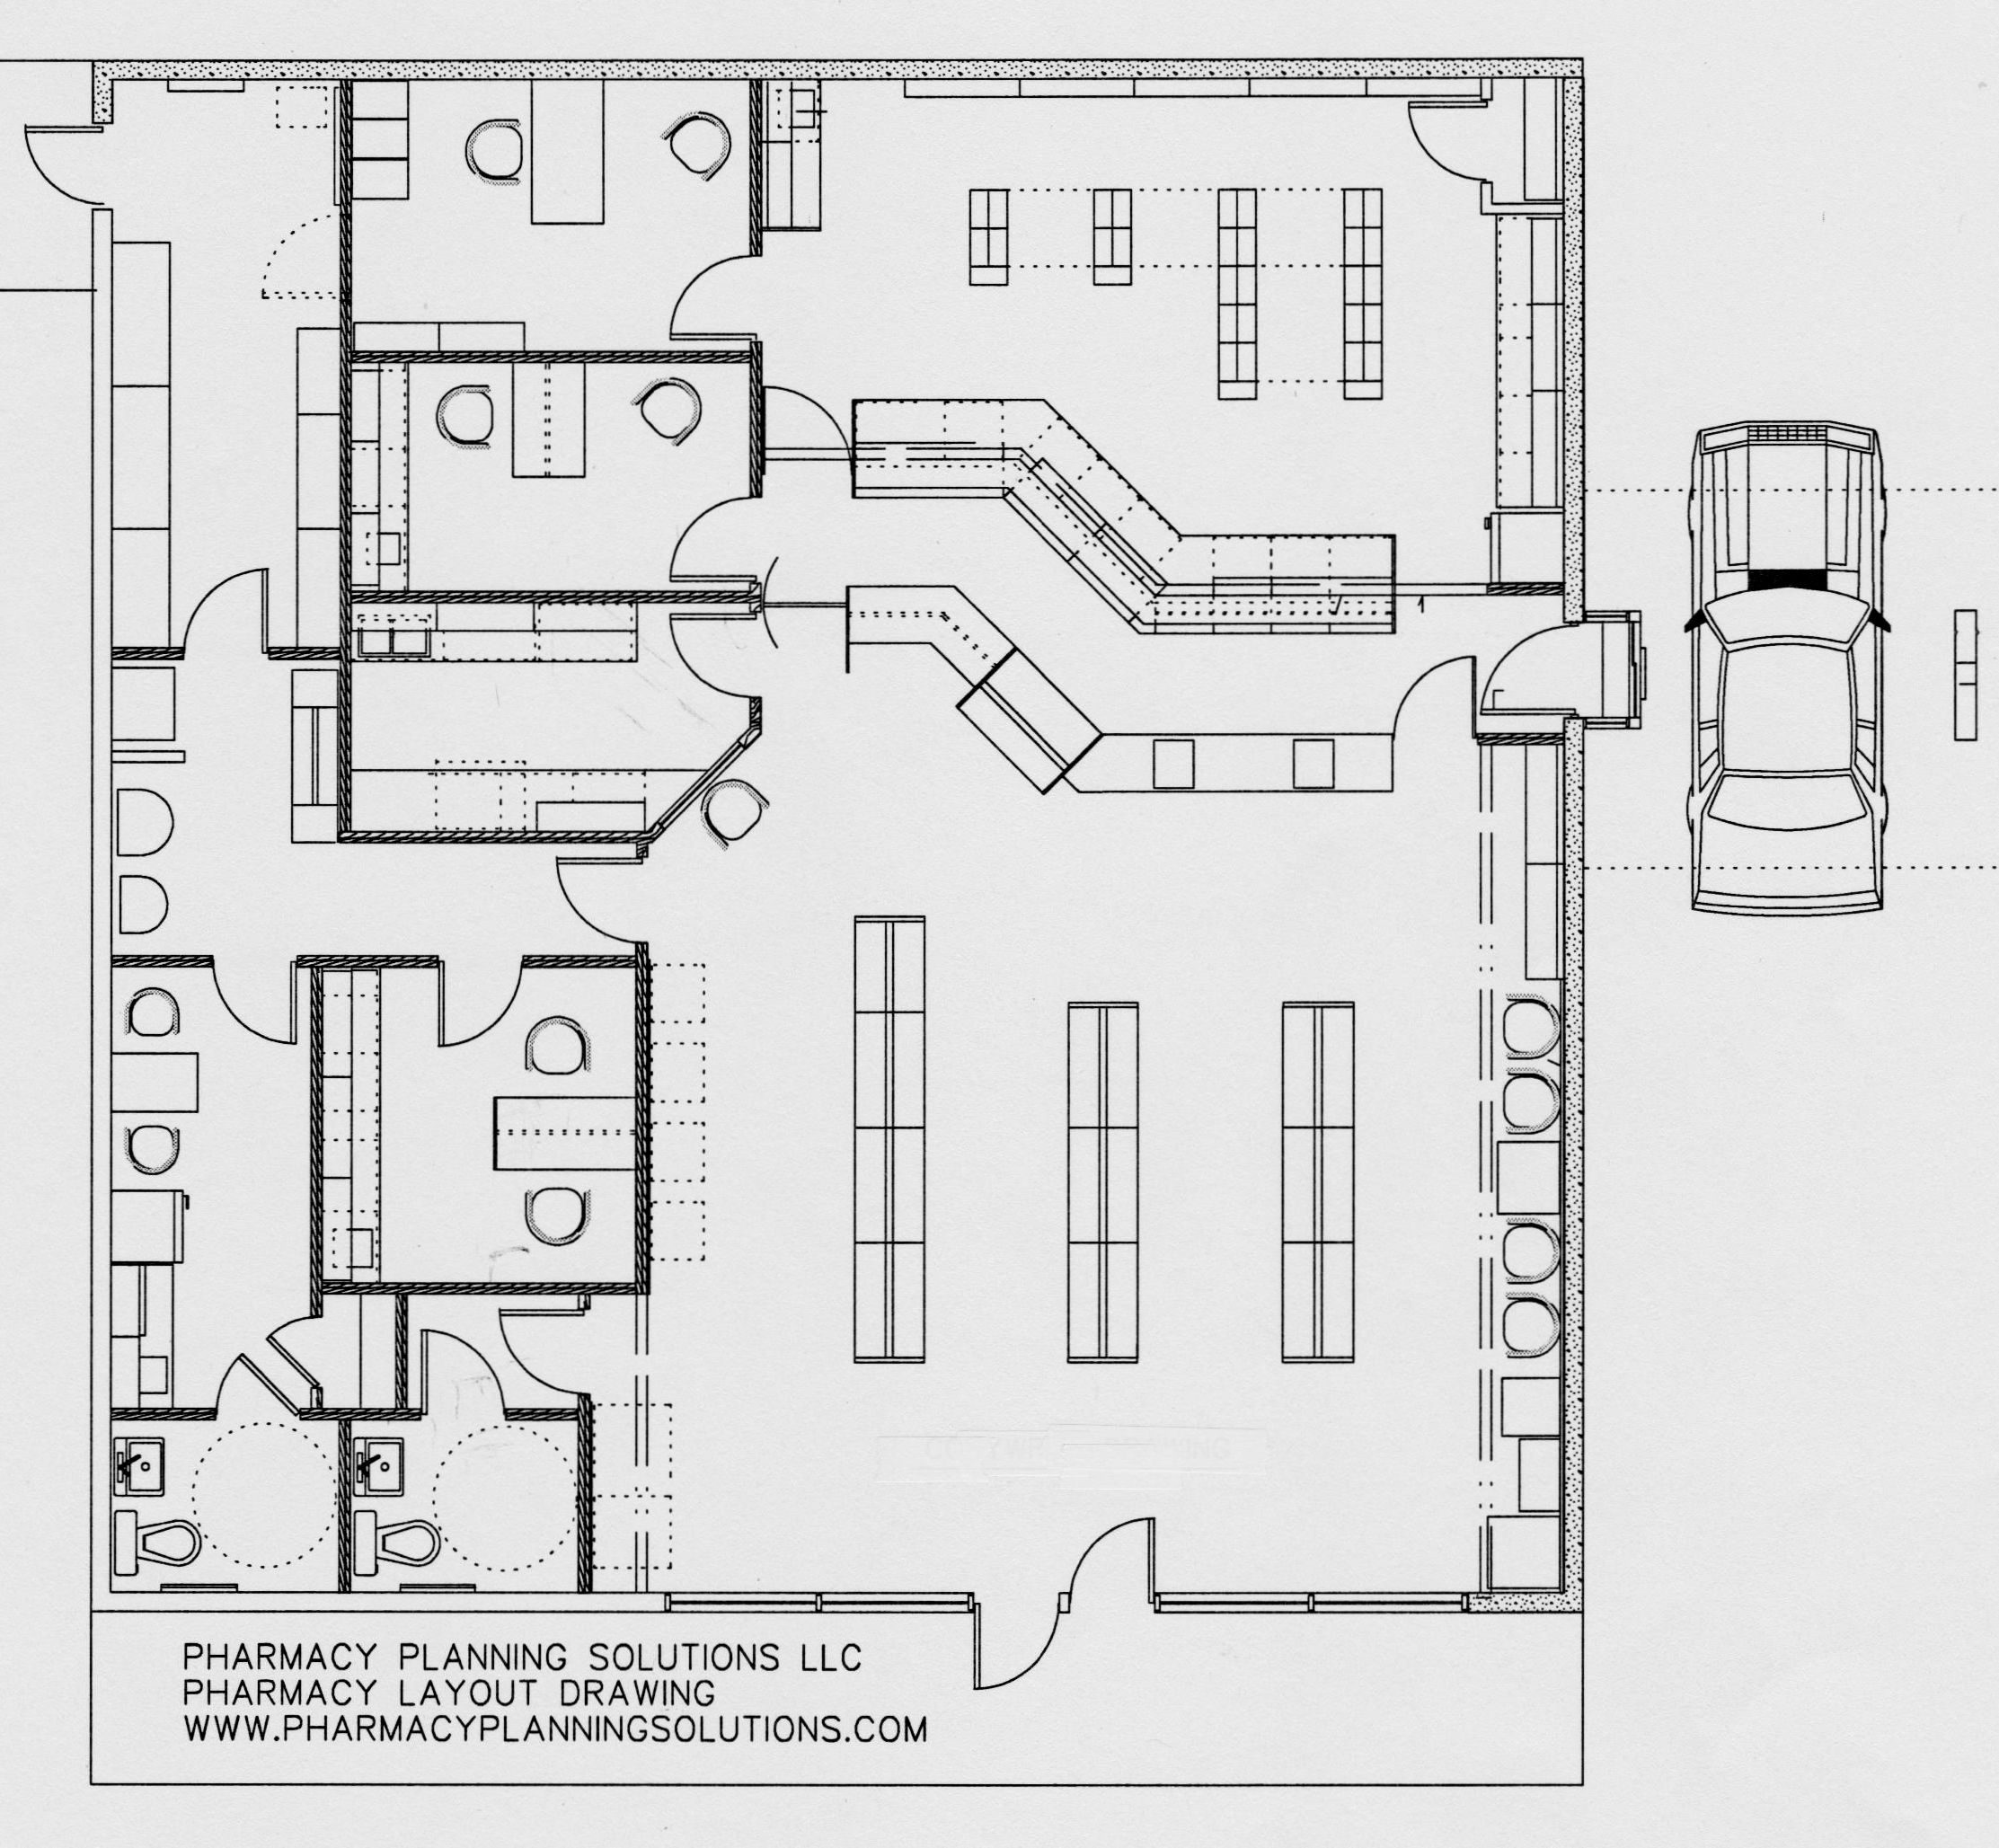 Pharmacy Layout By Pharmacy Planning Solutions Pharmacy Design Healthcare Interior Design Store Plan